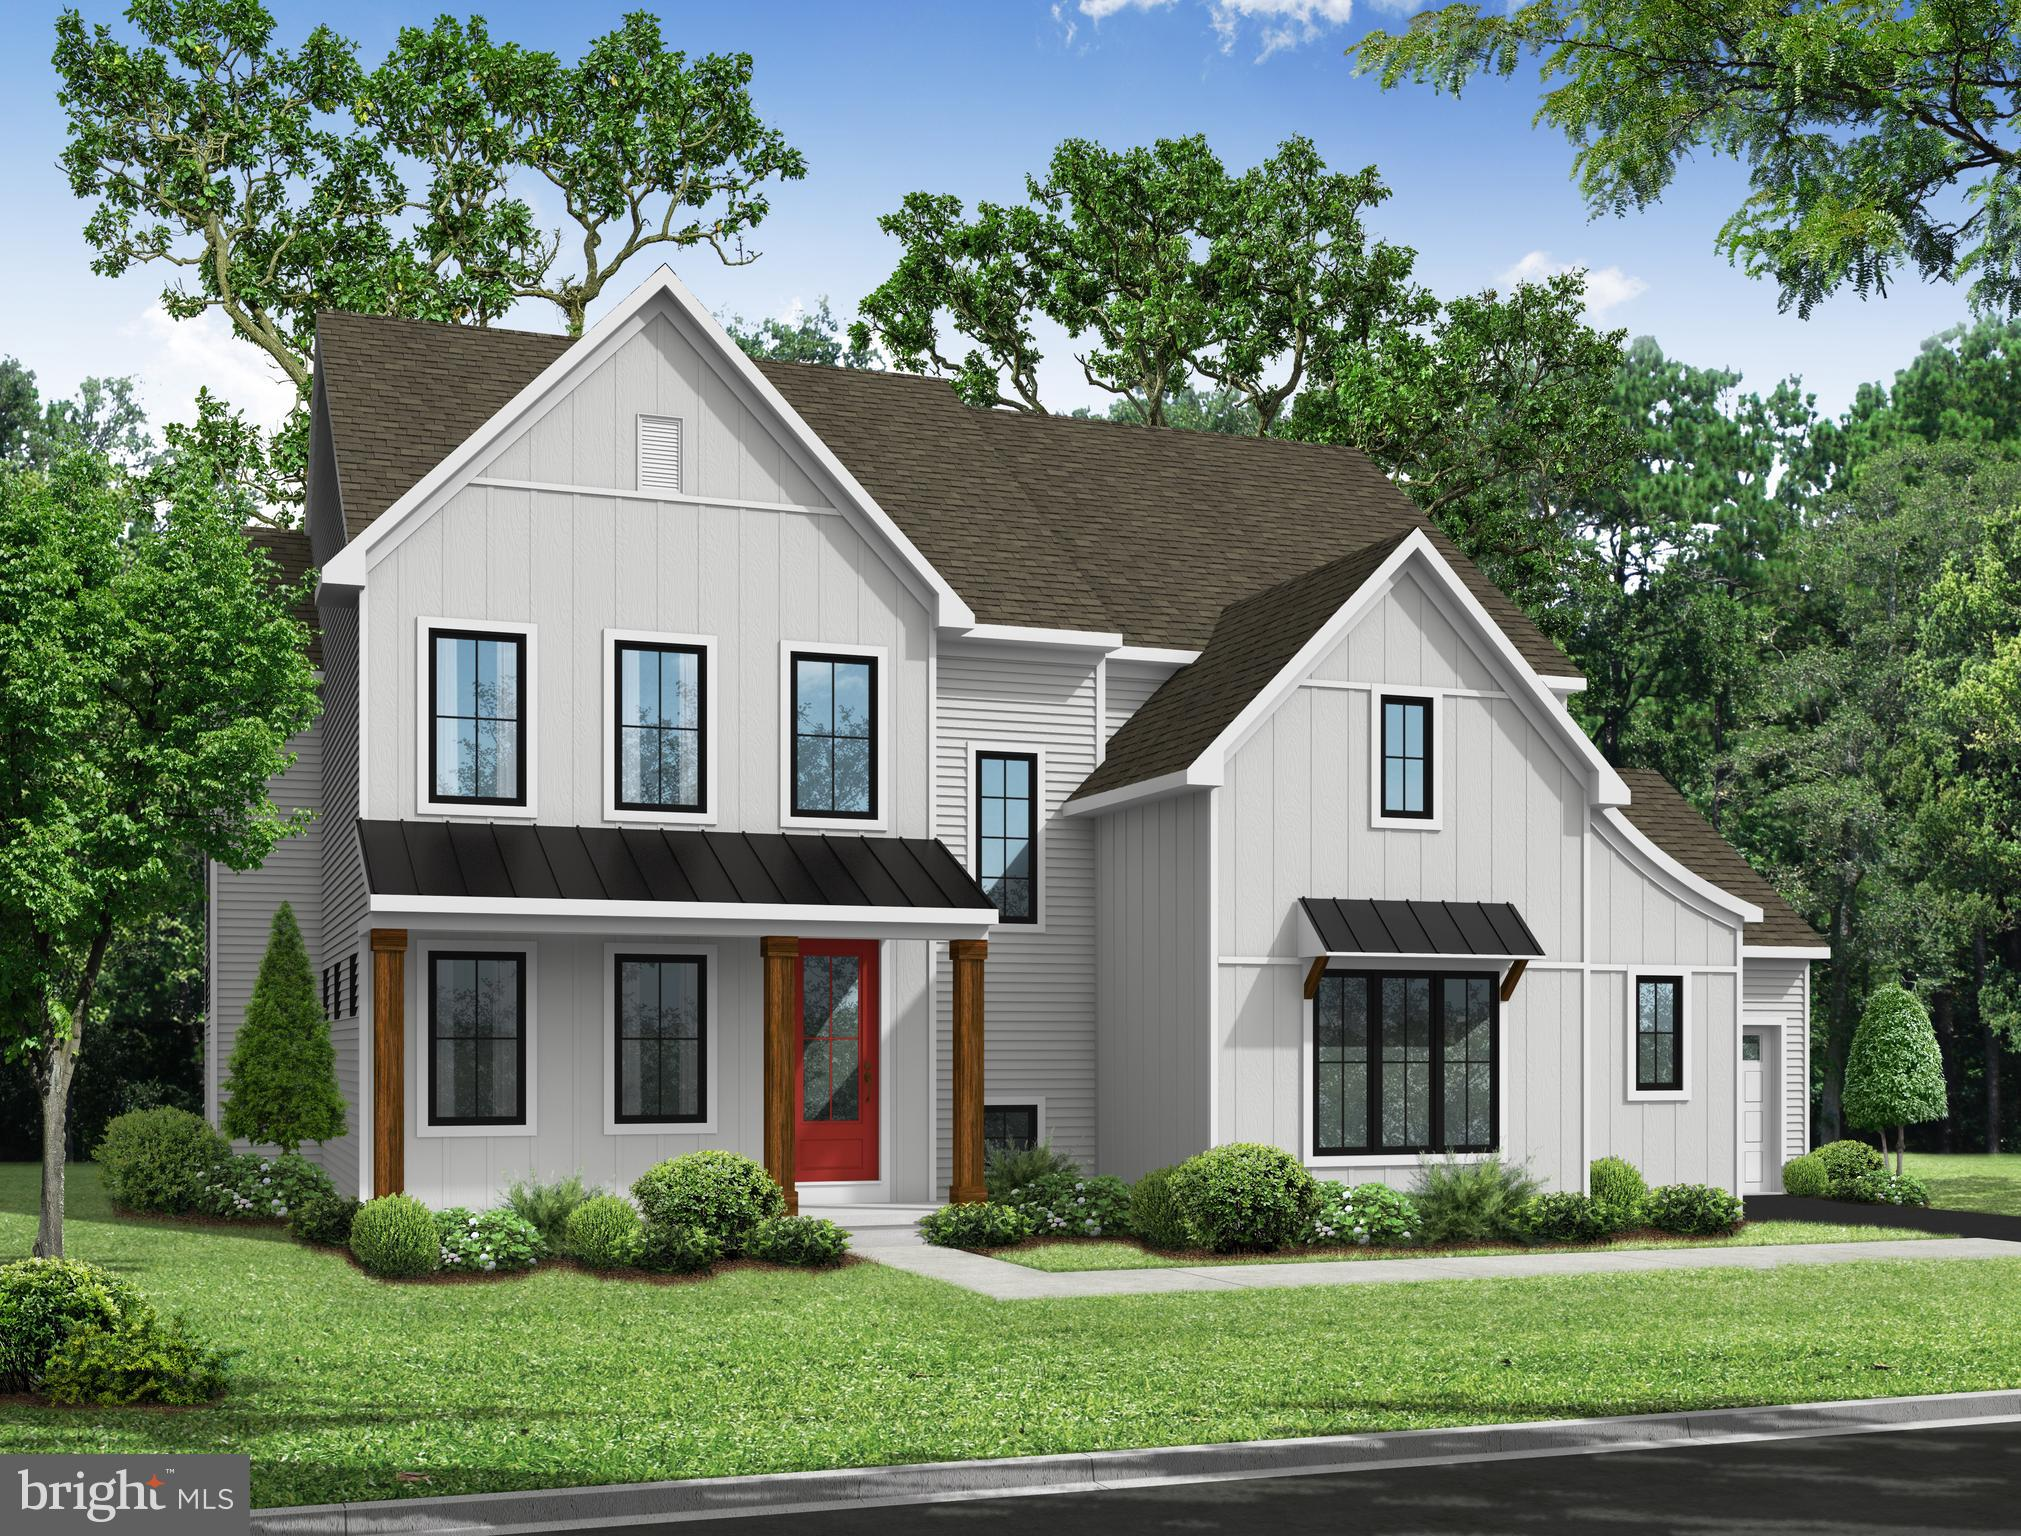 RENDERING of home while under construction.